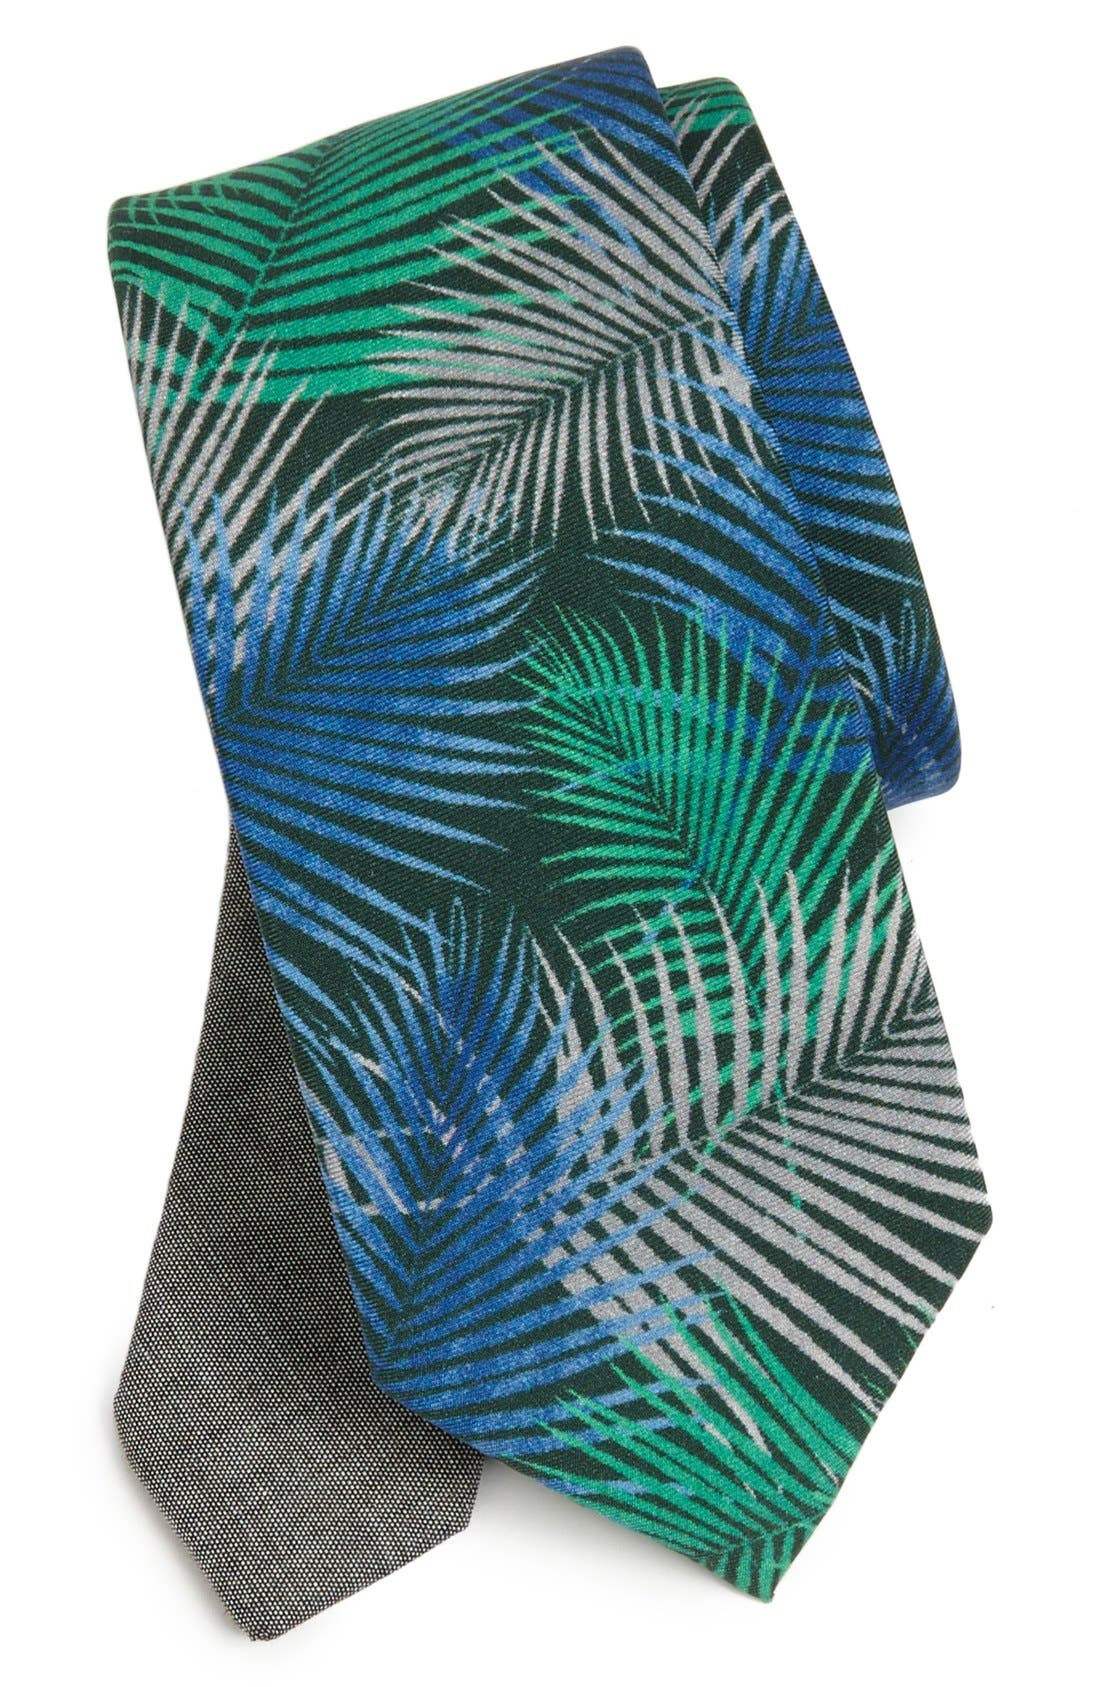 Main Image - EDIT by The Tie Bar 'Novelty' Silk Tie (Nordstrom Exclusive)